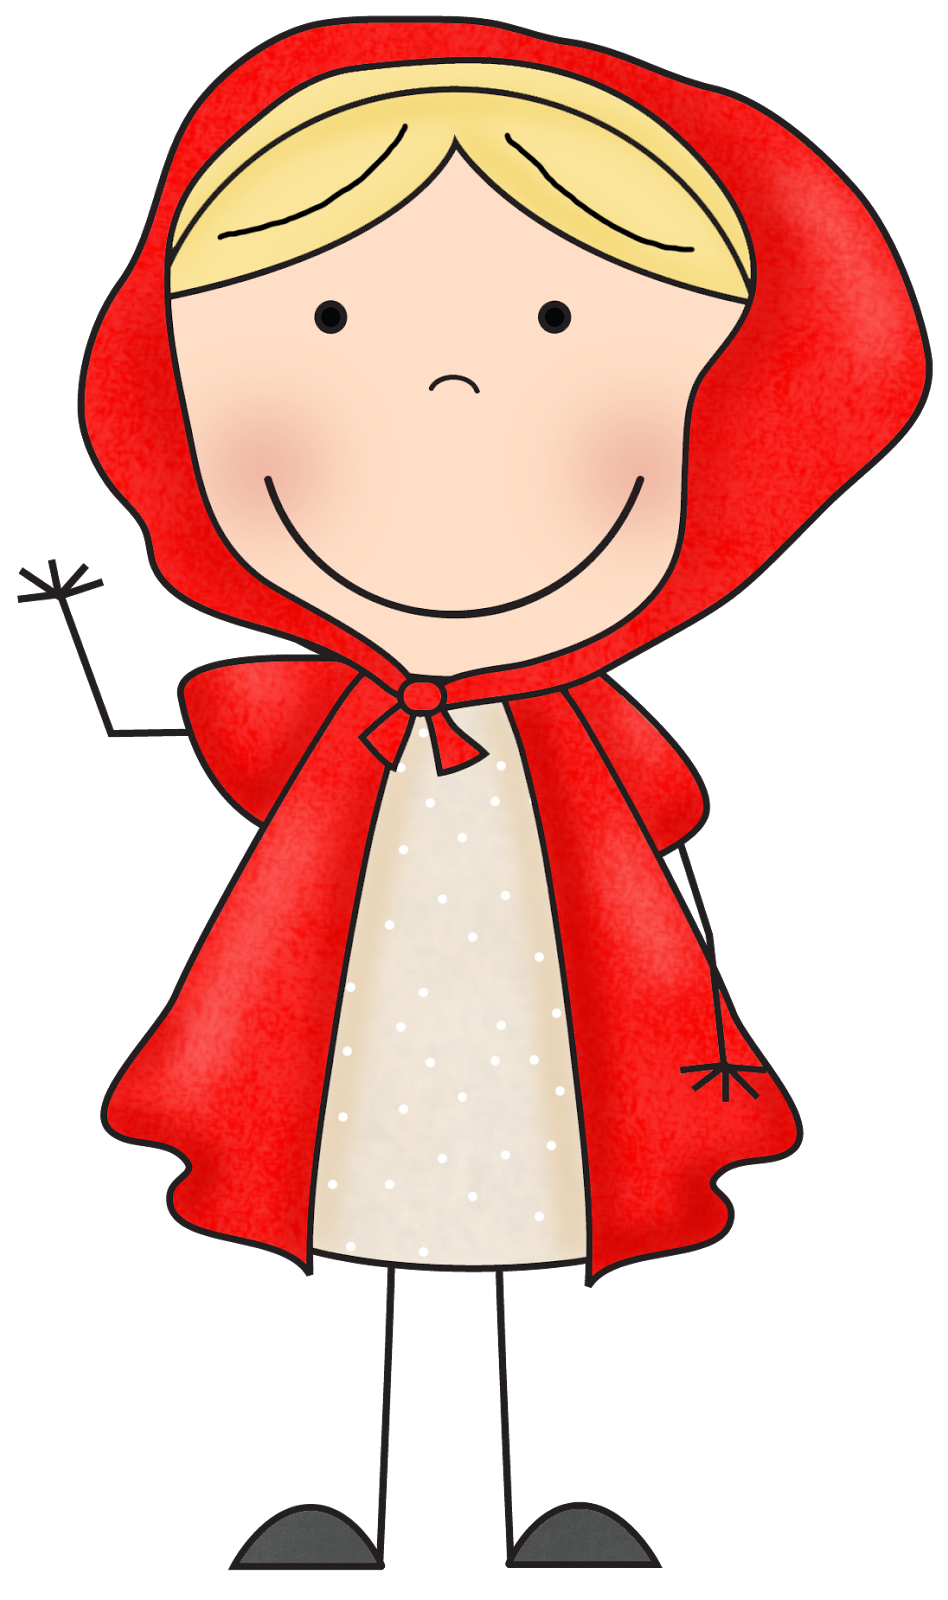 Pin by elena on. Clipart forest red riding hood